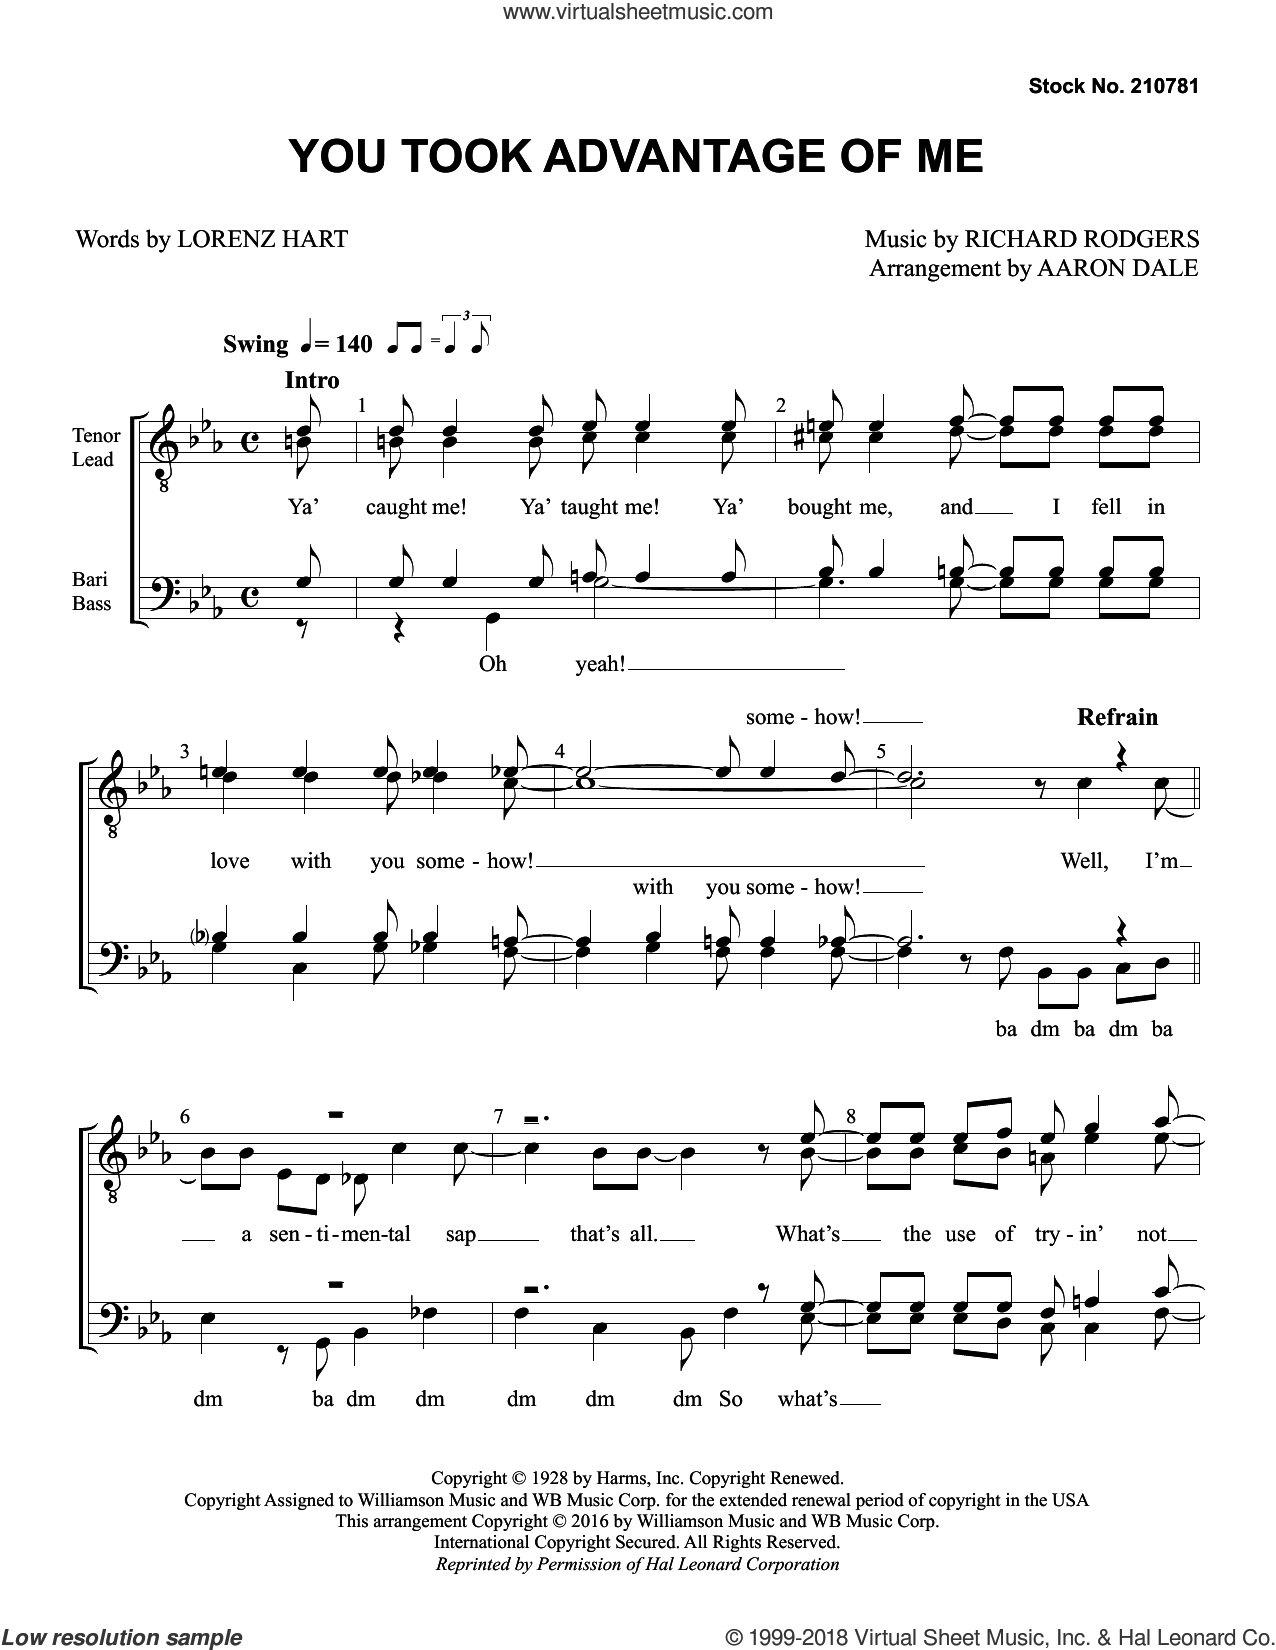 You Took Advantage of Me (arr. Aaron Dale) sheet music for choir (TTBB: tenor, bass) by Rodgers & Hart, Aaron Dale, Lorenz Hart and Richard Rodgers, intermediate skill level